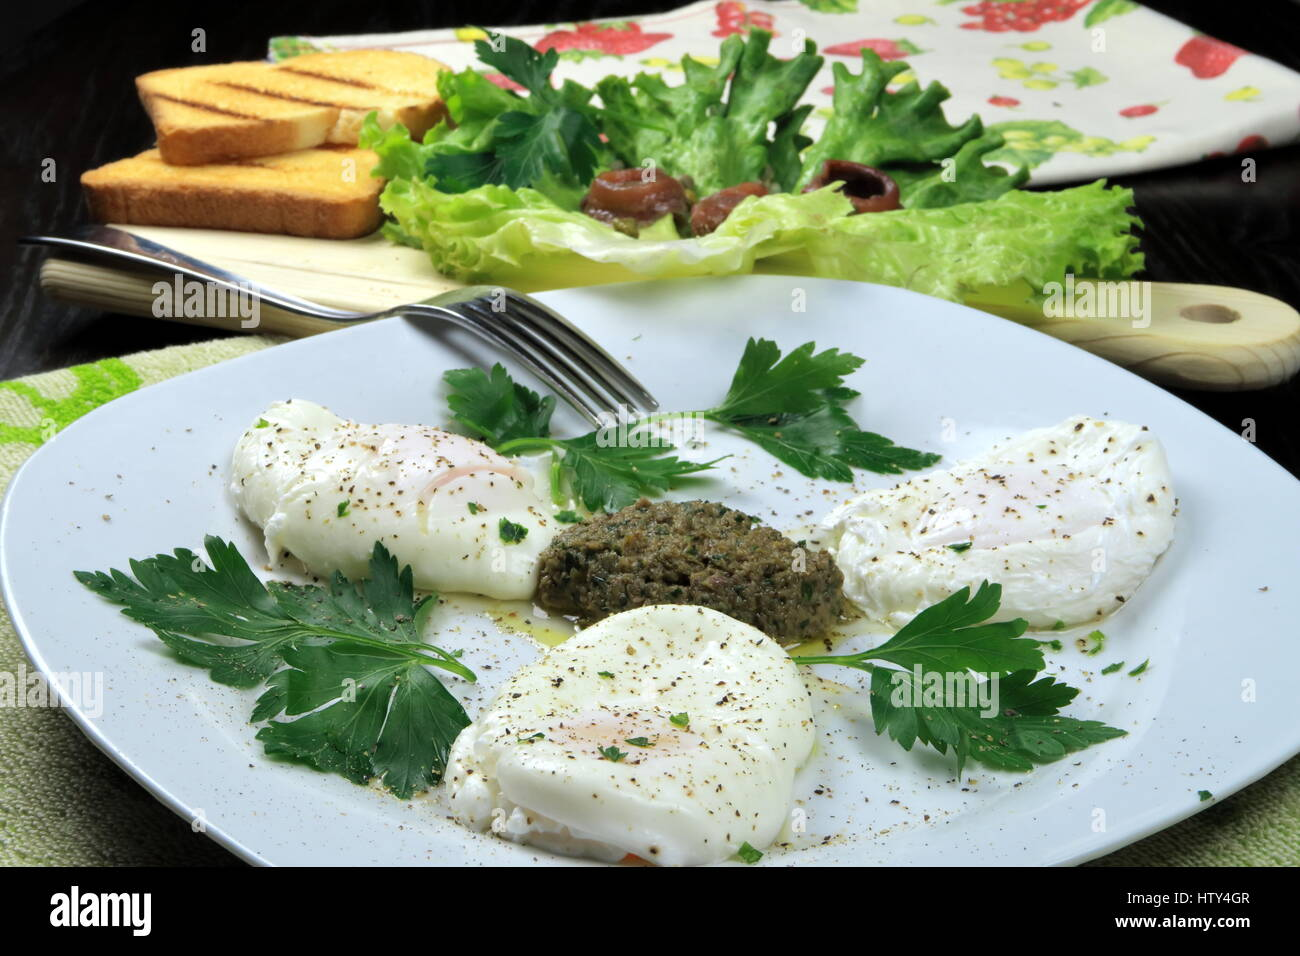 Three Poached Eggs on capers, parsley and anchovies sauce served with fork in a white dish on colorful kitchen cloths - Stock Image